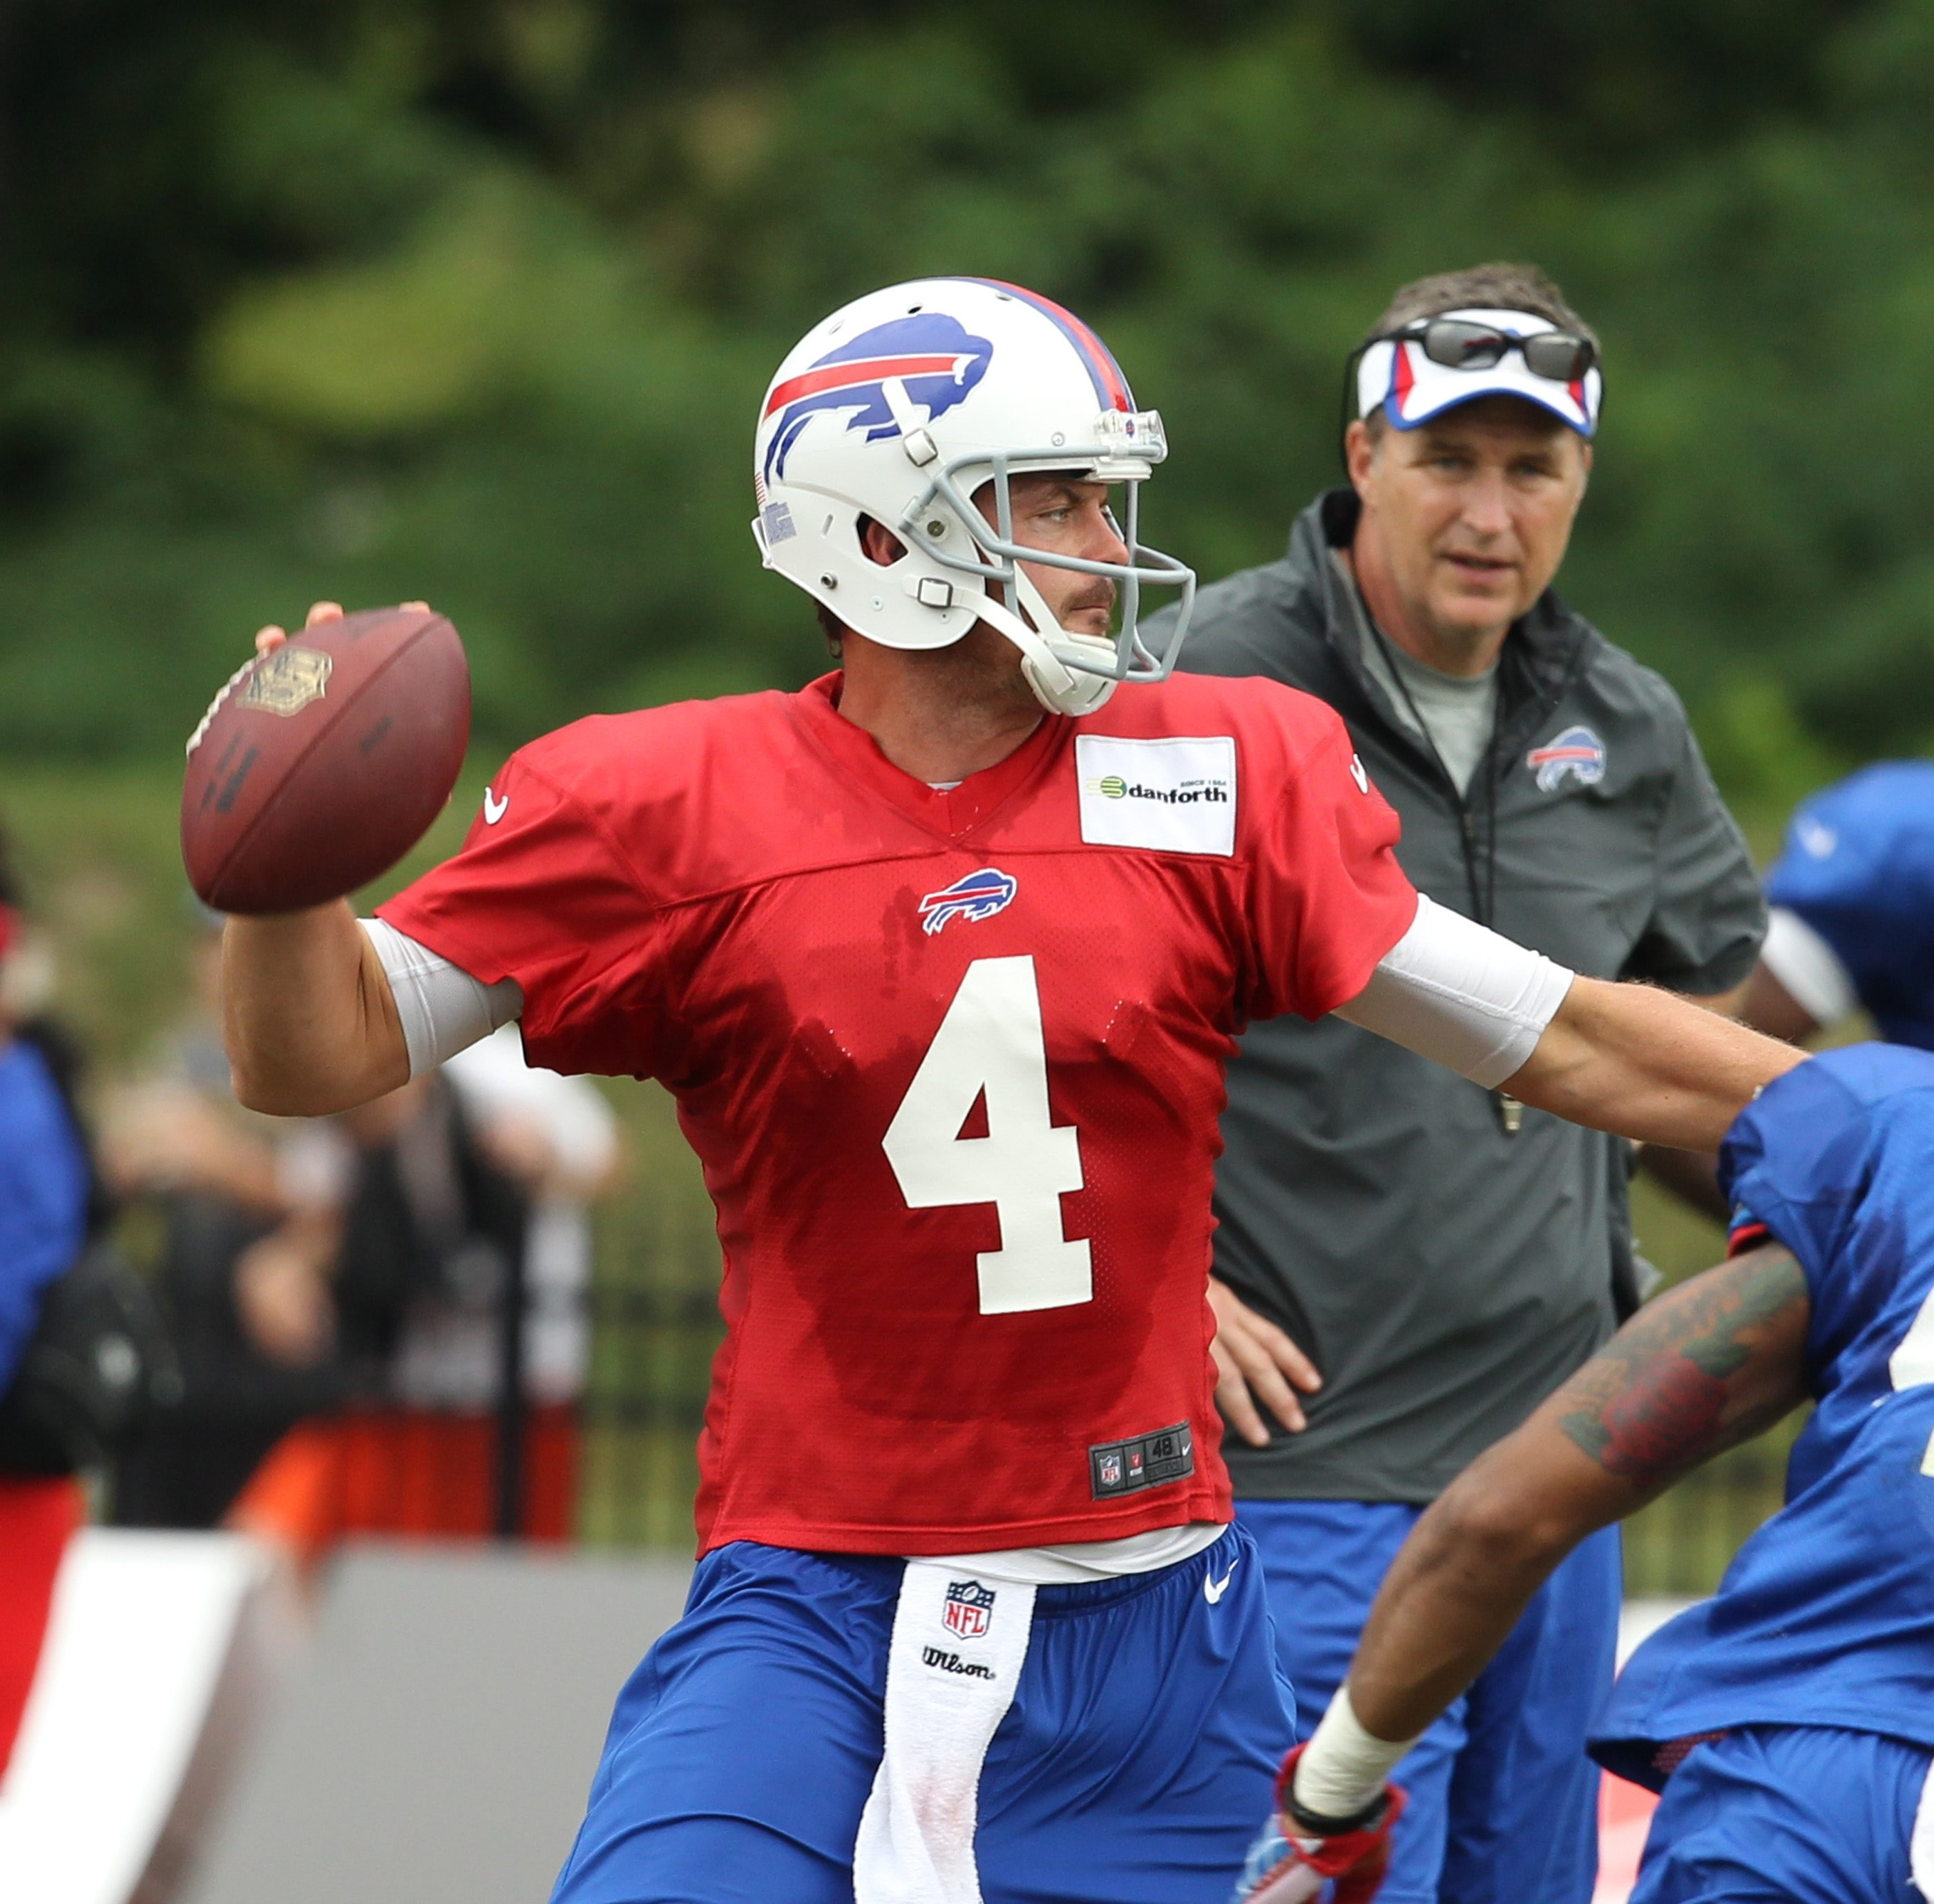 The Bills' Kevin Kolb participated in all the quarterback drills in practice but wasn't moving around at peak efficiency.